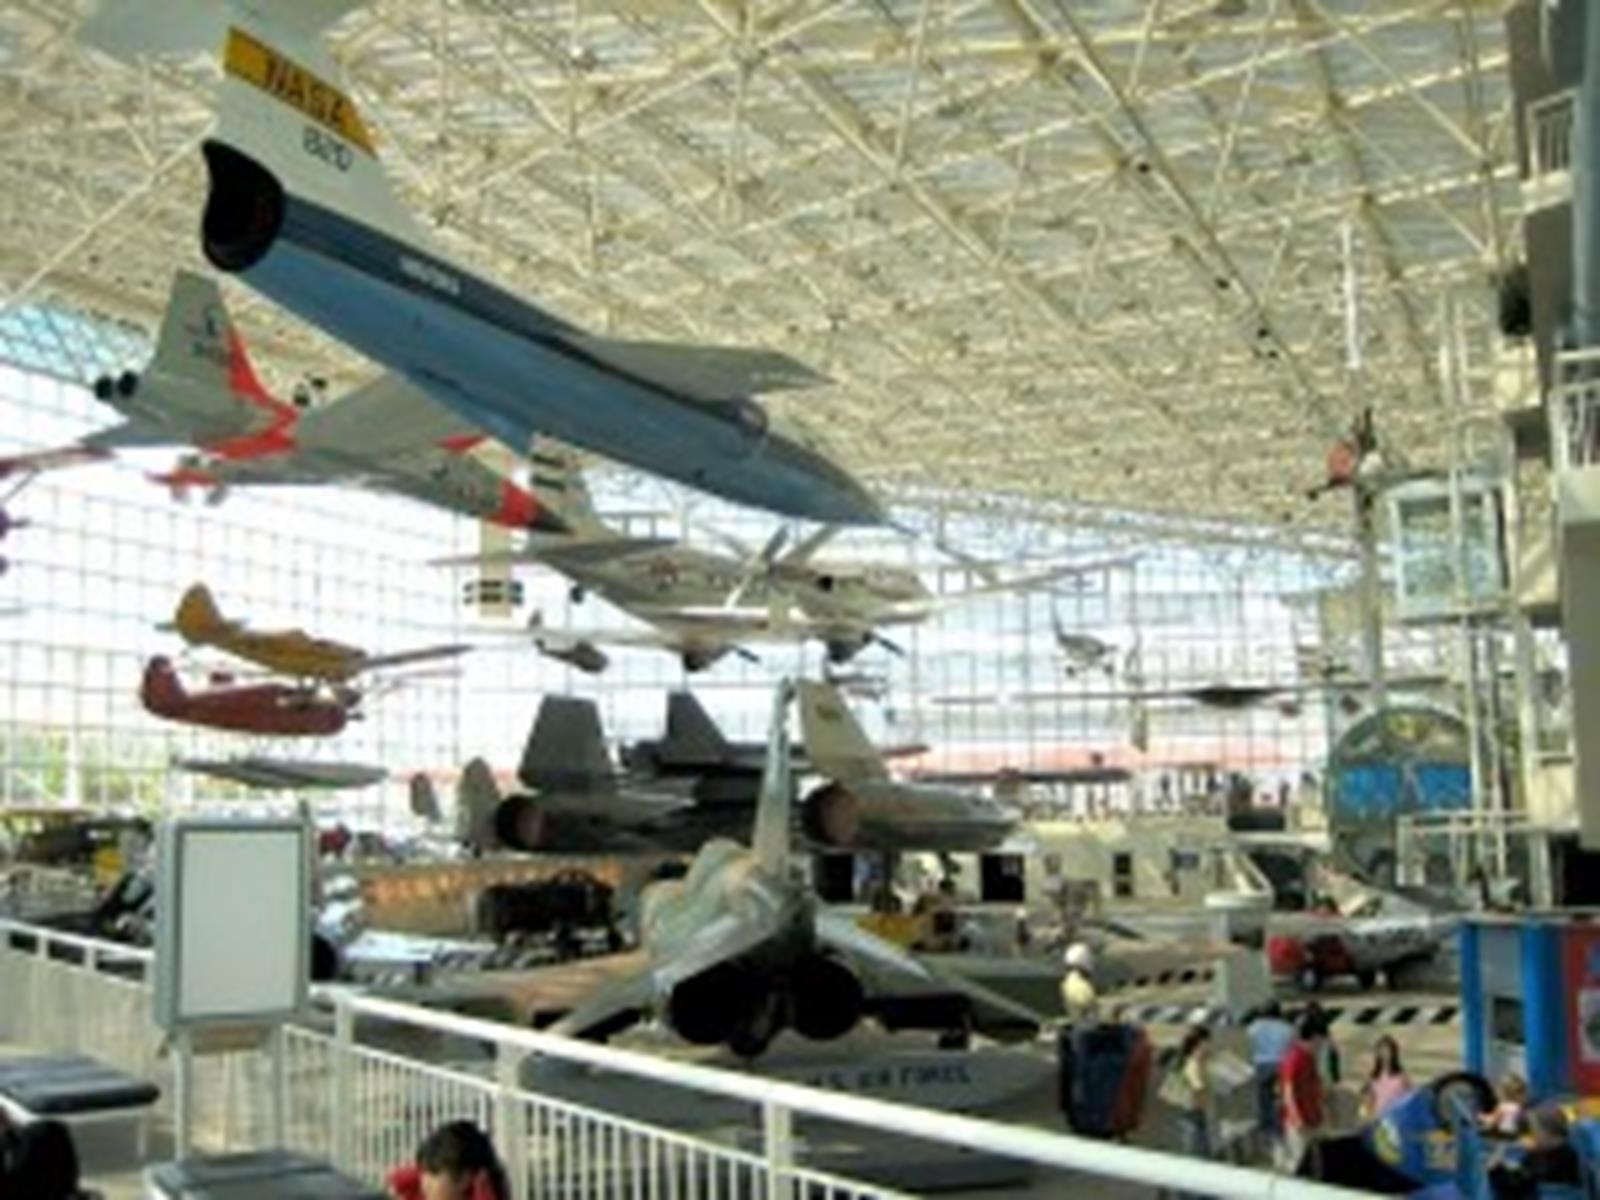 The Museum of Flight